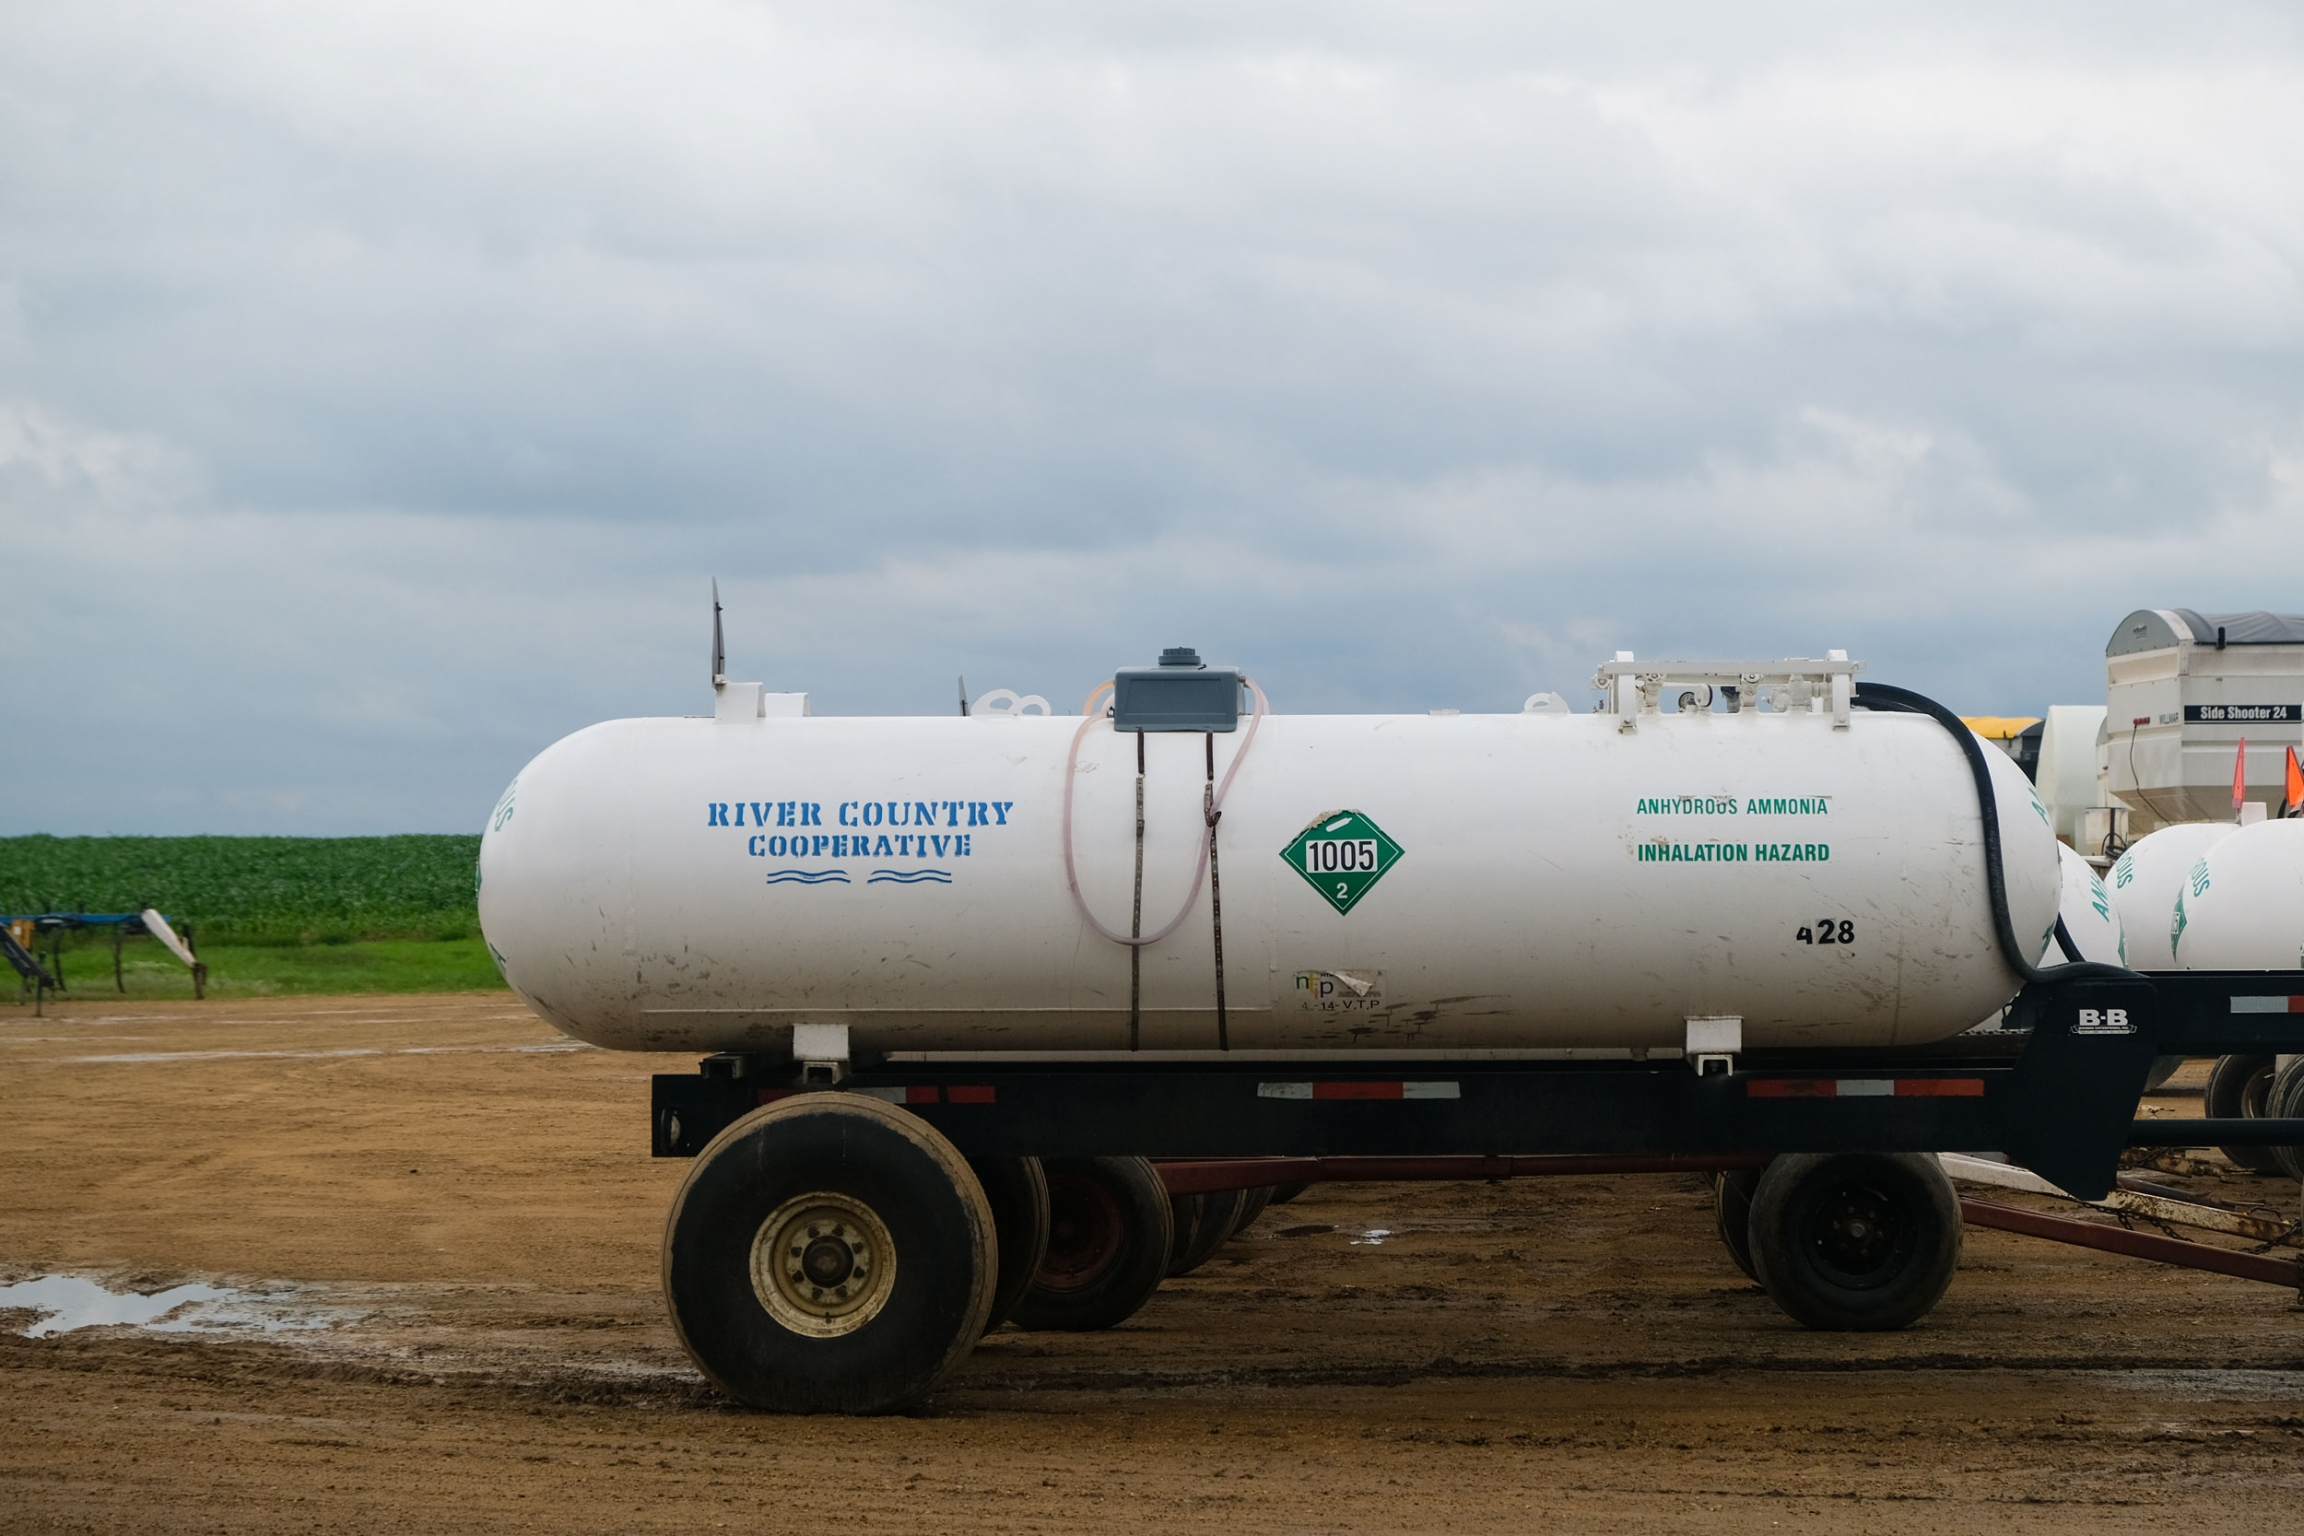 A trailer with a tank of anhydrous ammonia is shown parked on a dirt parking lot.